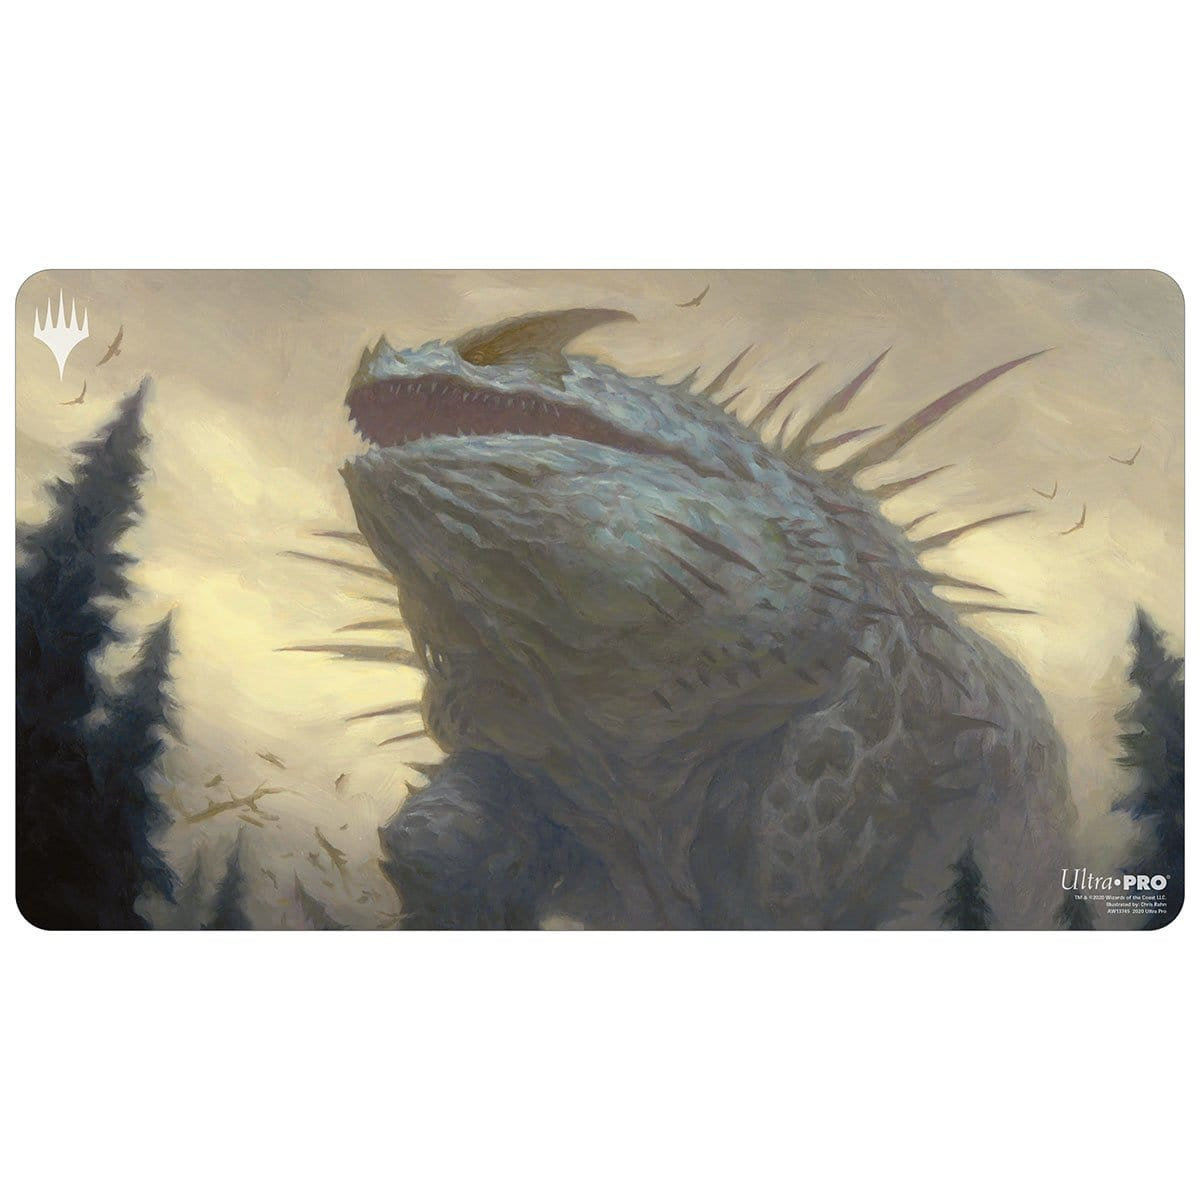 Craterhoof Behemoth Playmat